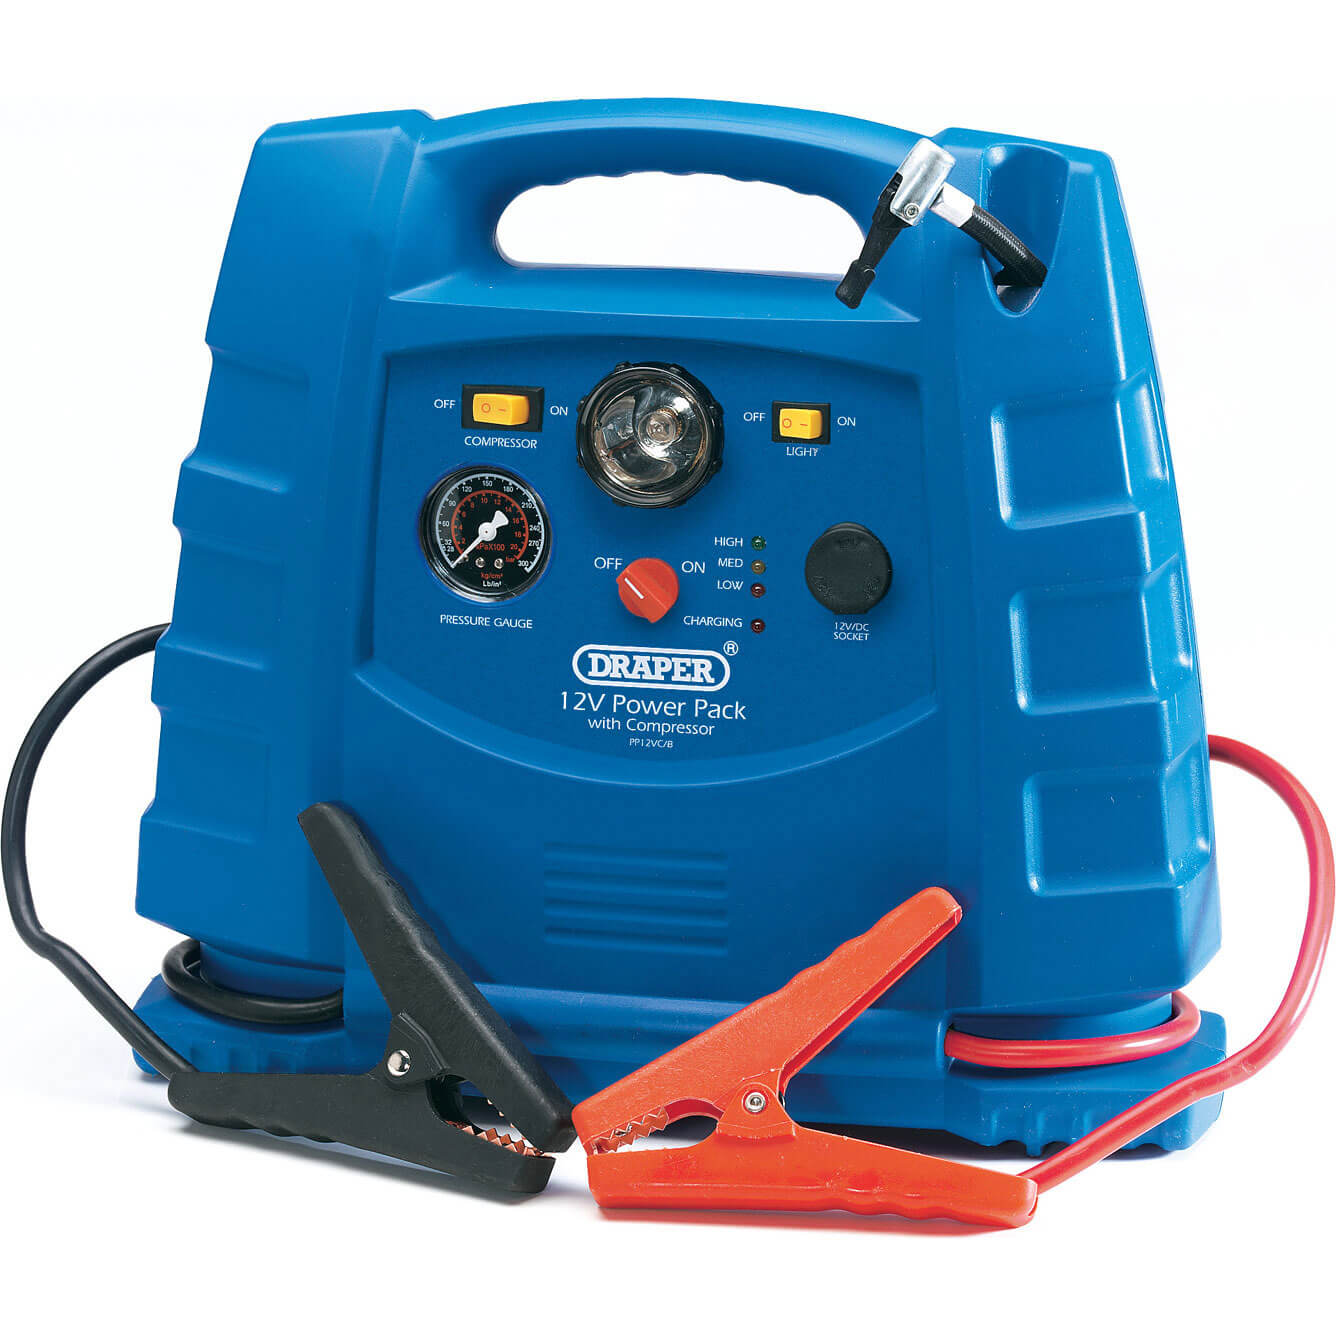 Global Hydraulic Power Packs Market Research Report 2018